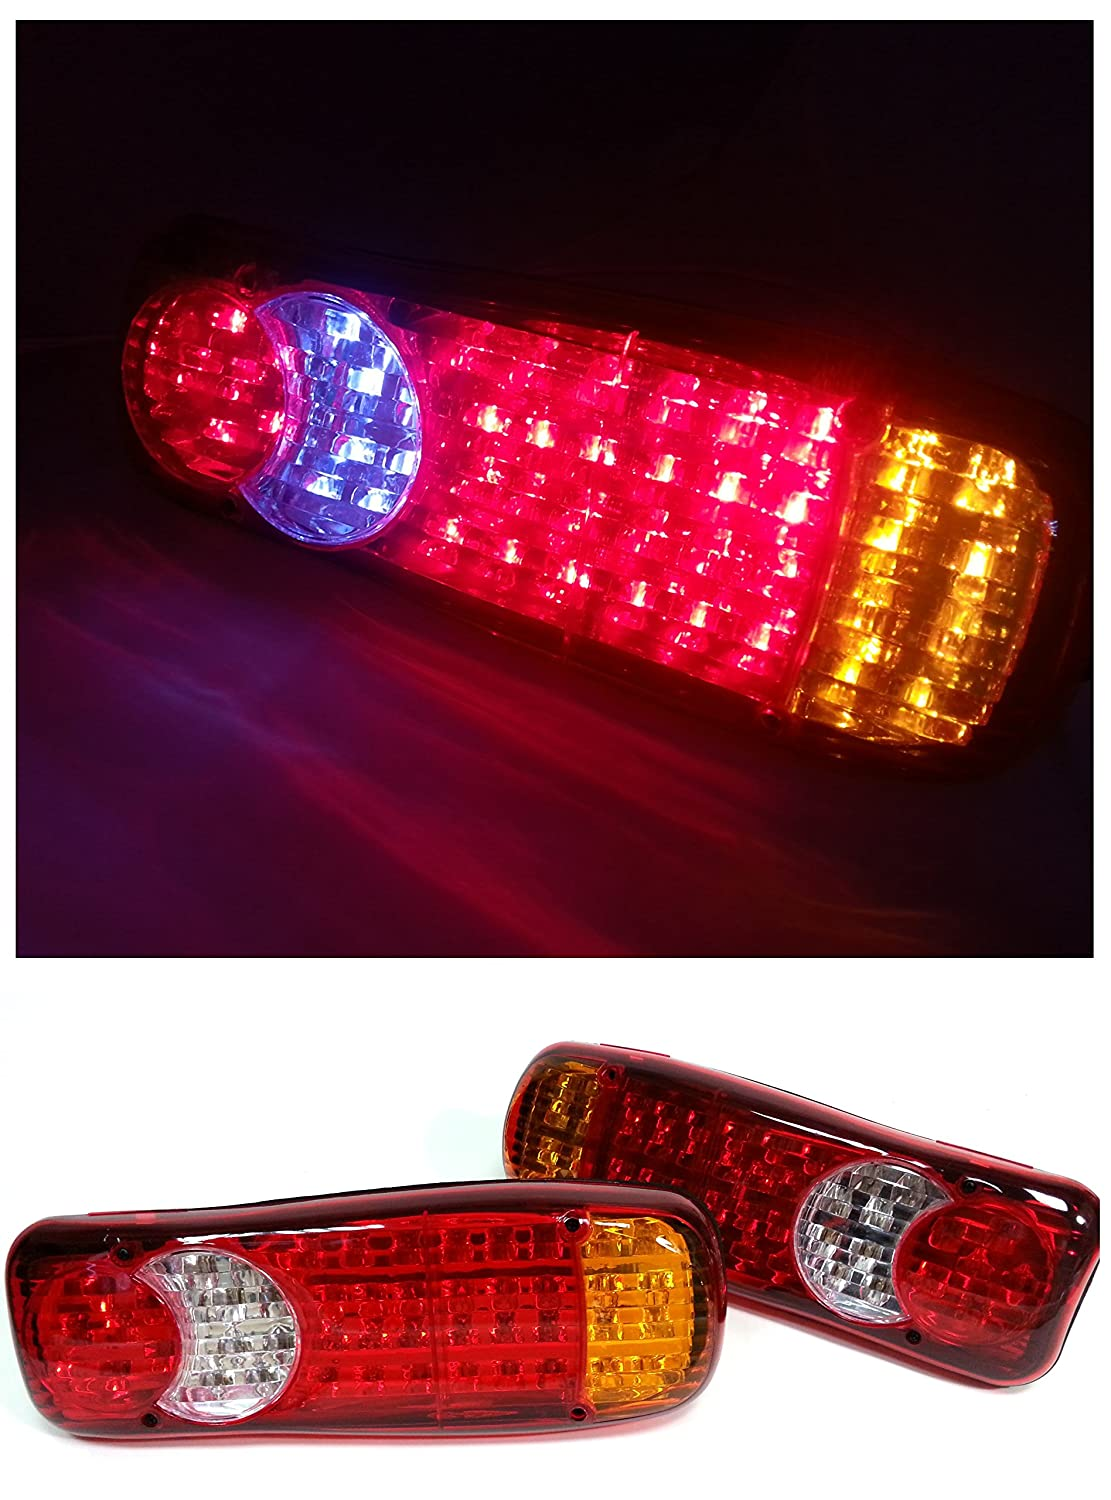 2x 24V LED REAR TAIL LIGHTS LAMPS 5 FUNCTION TRAILER LORRY TRUCK RECOVERY 46 LED